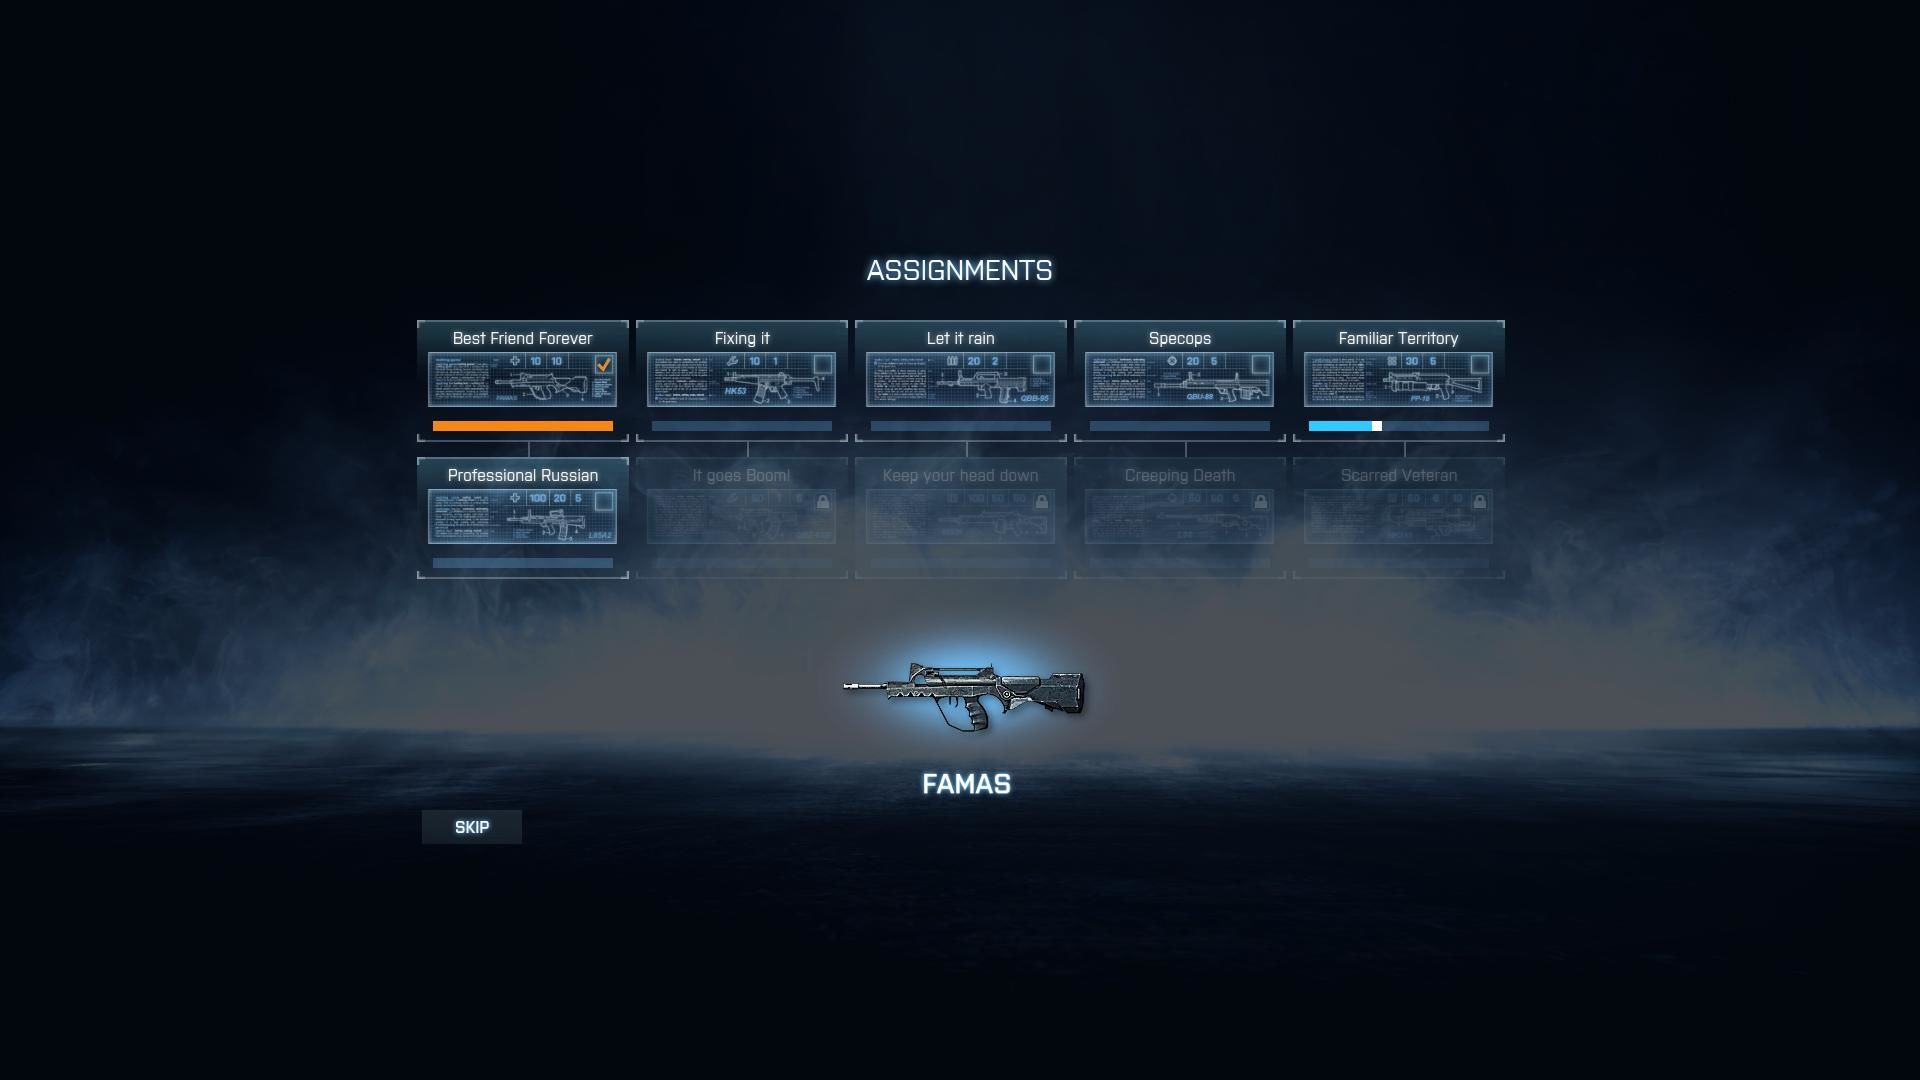 Battlefield 3: Back to Karkand Windows Assignments